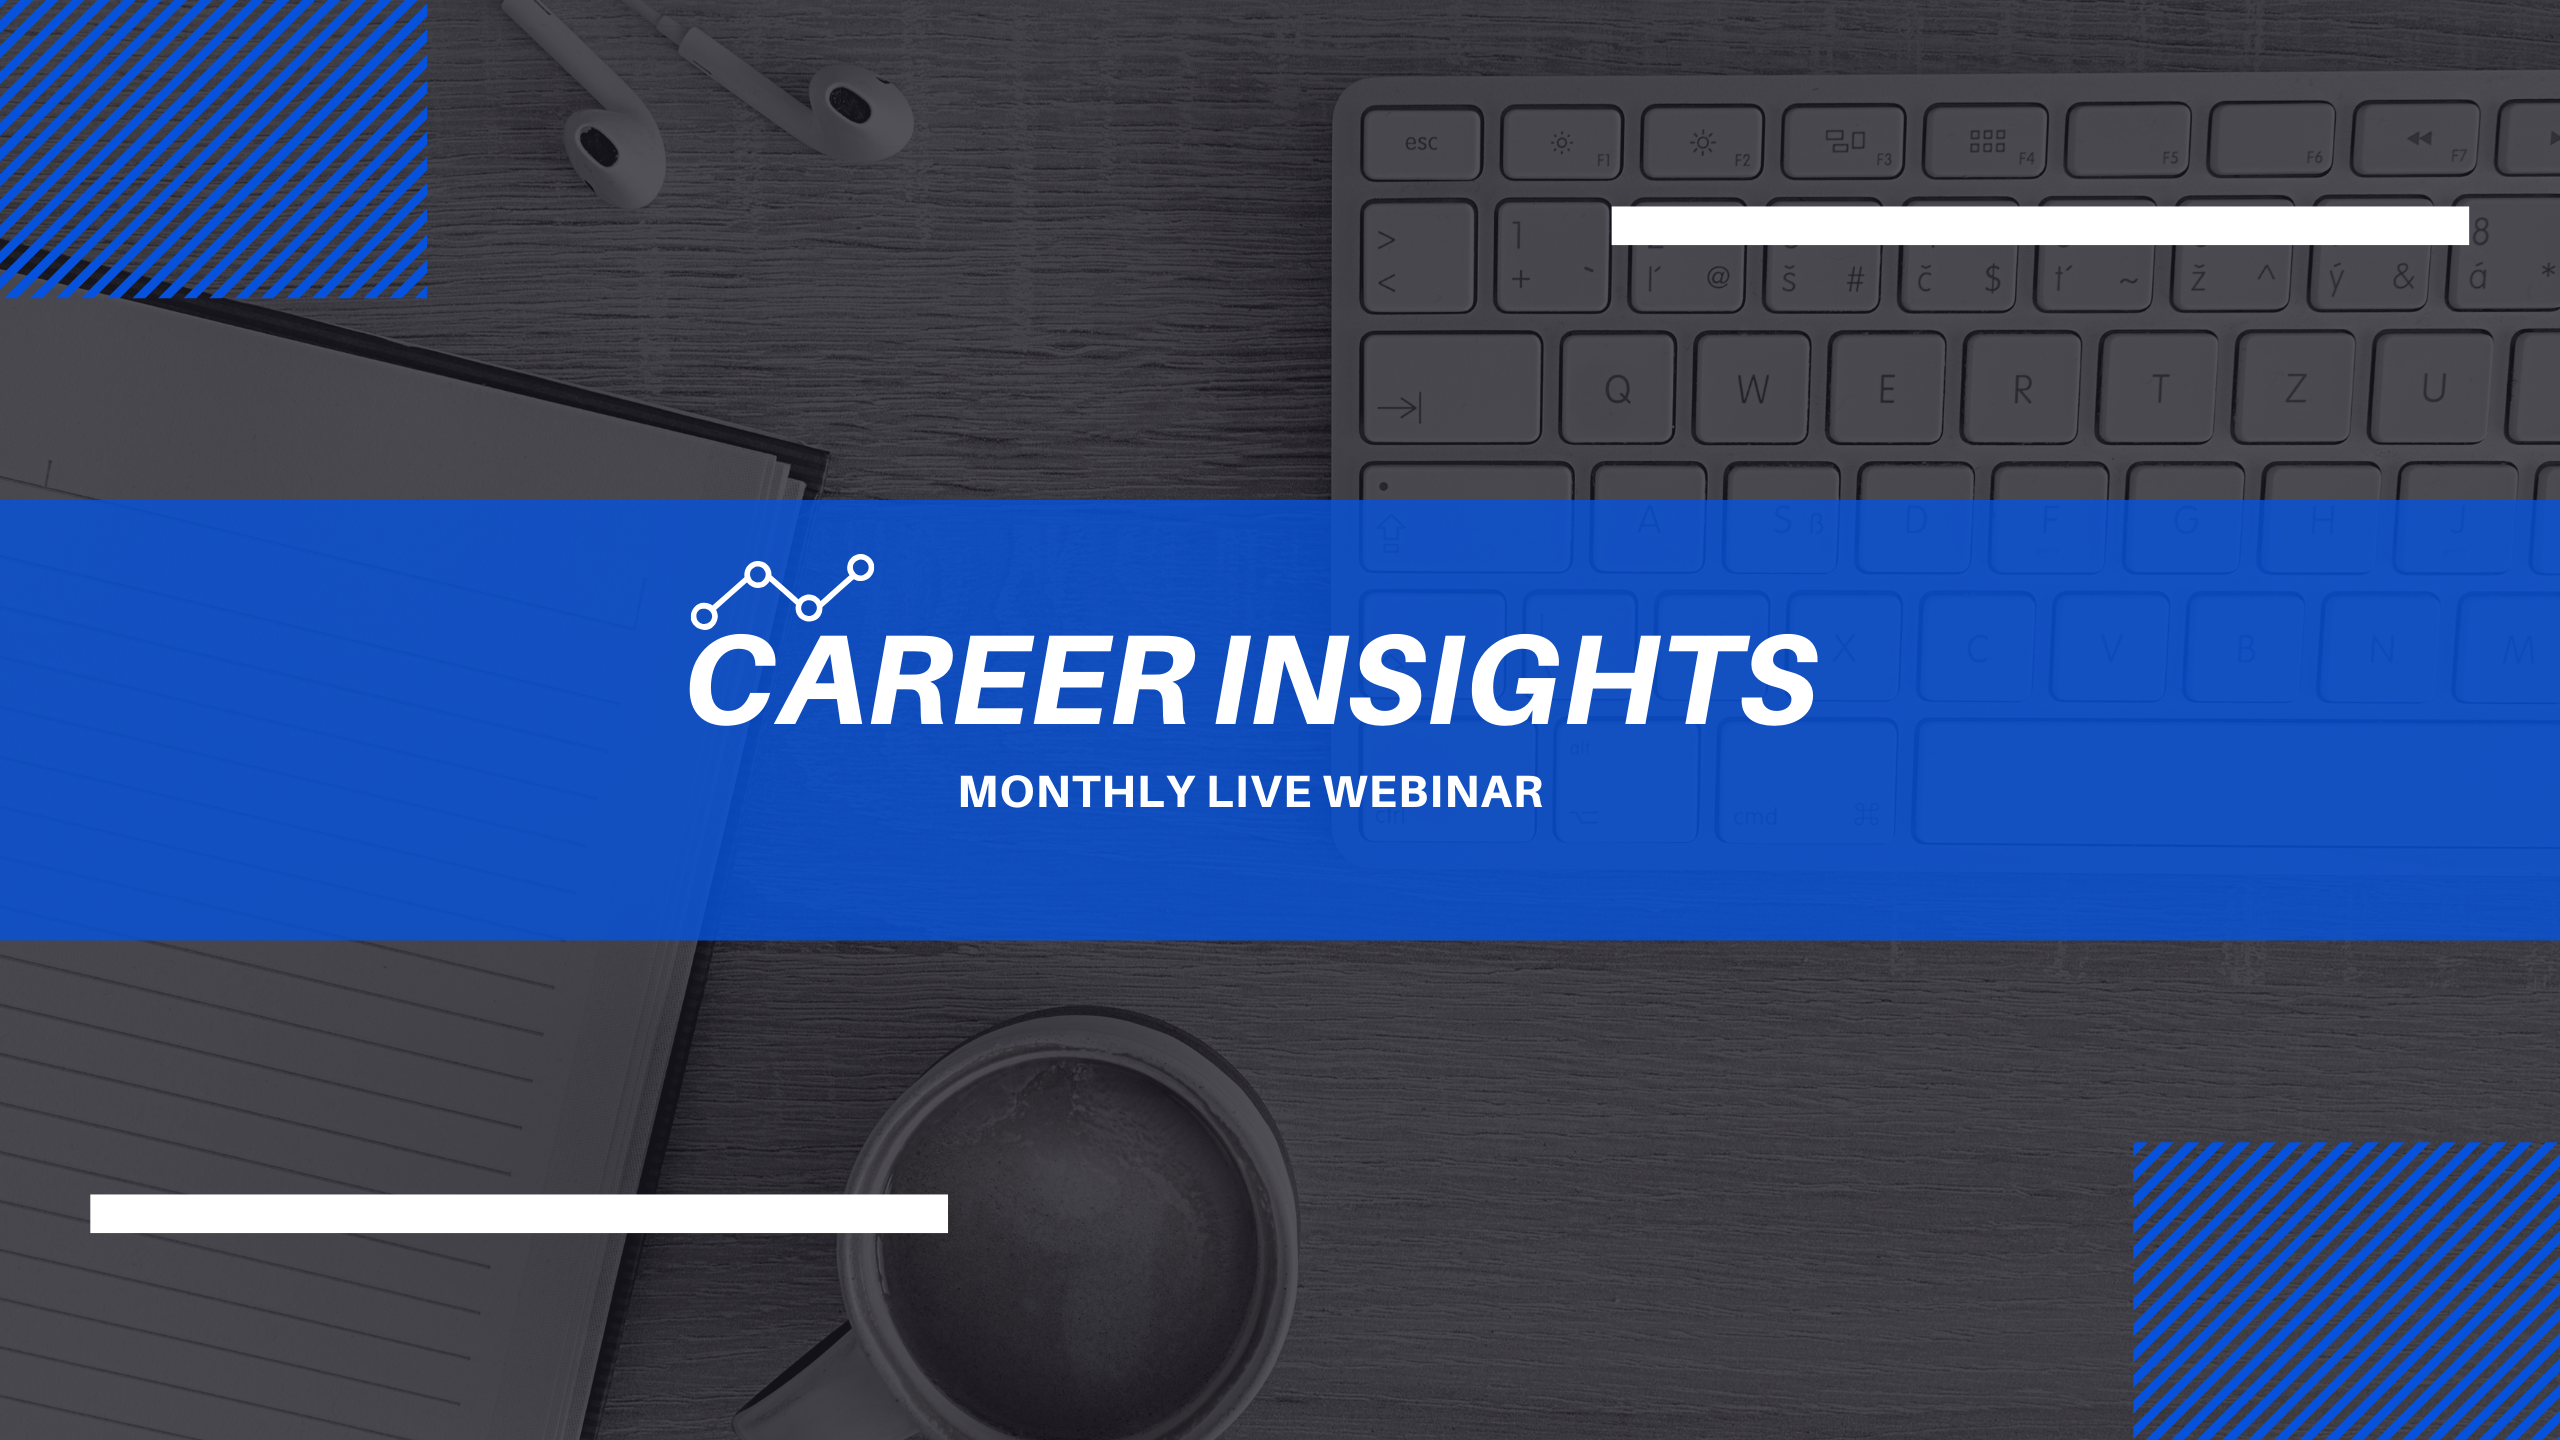 Career Insights: Monthly Digital Workshop - Barnsley